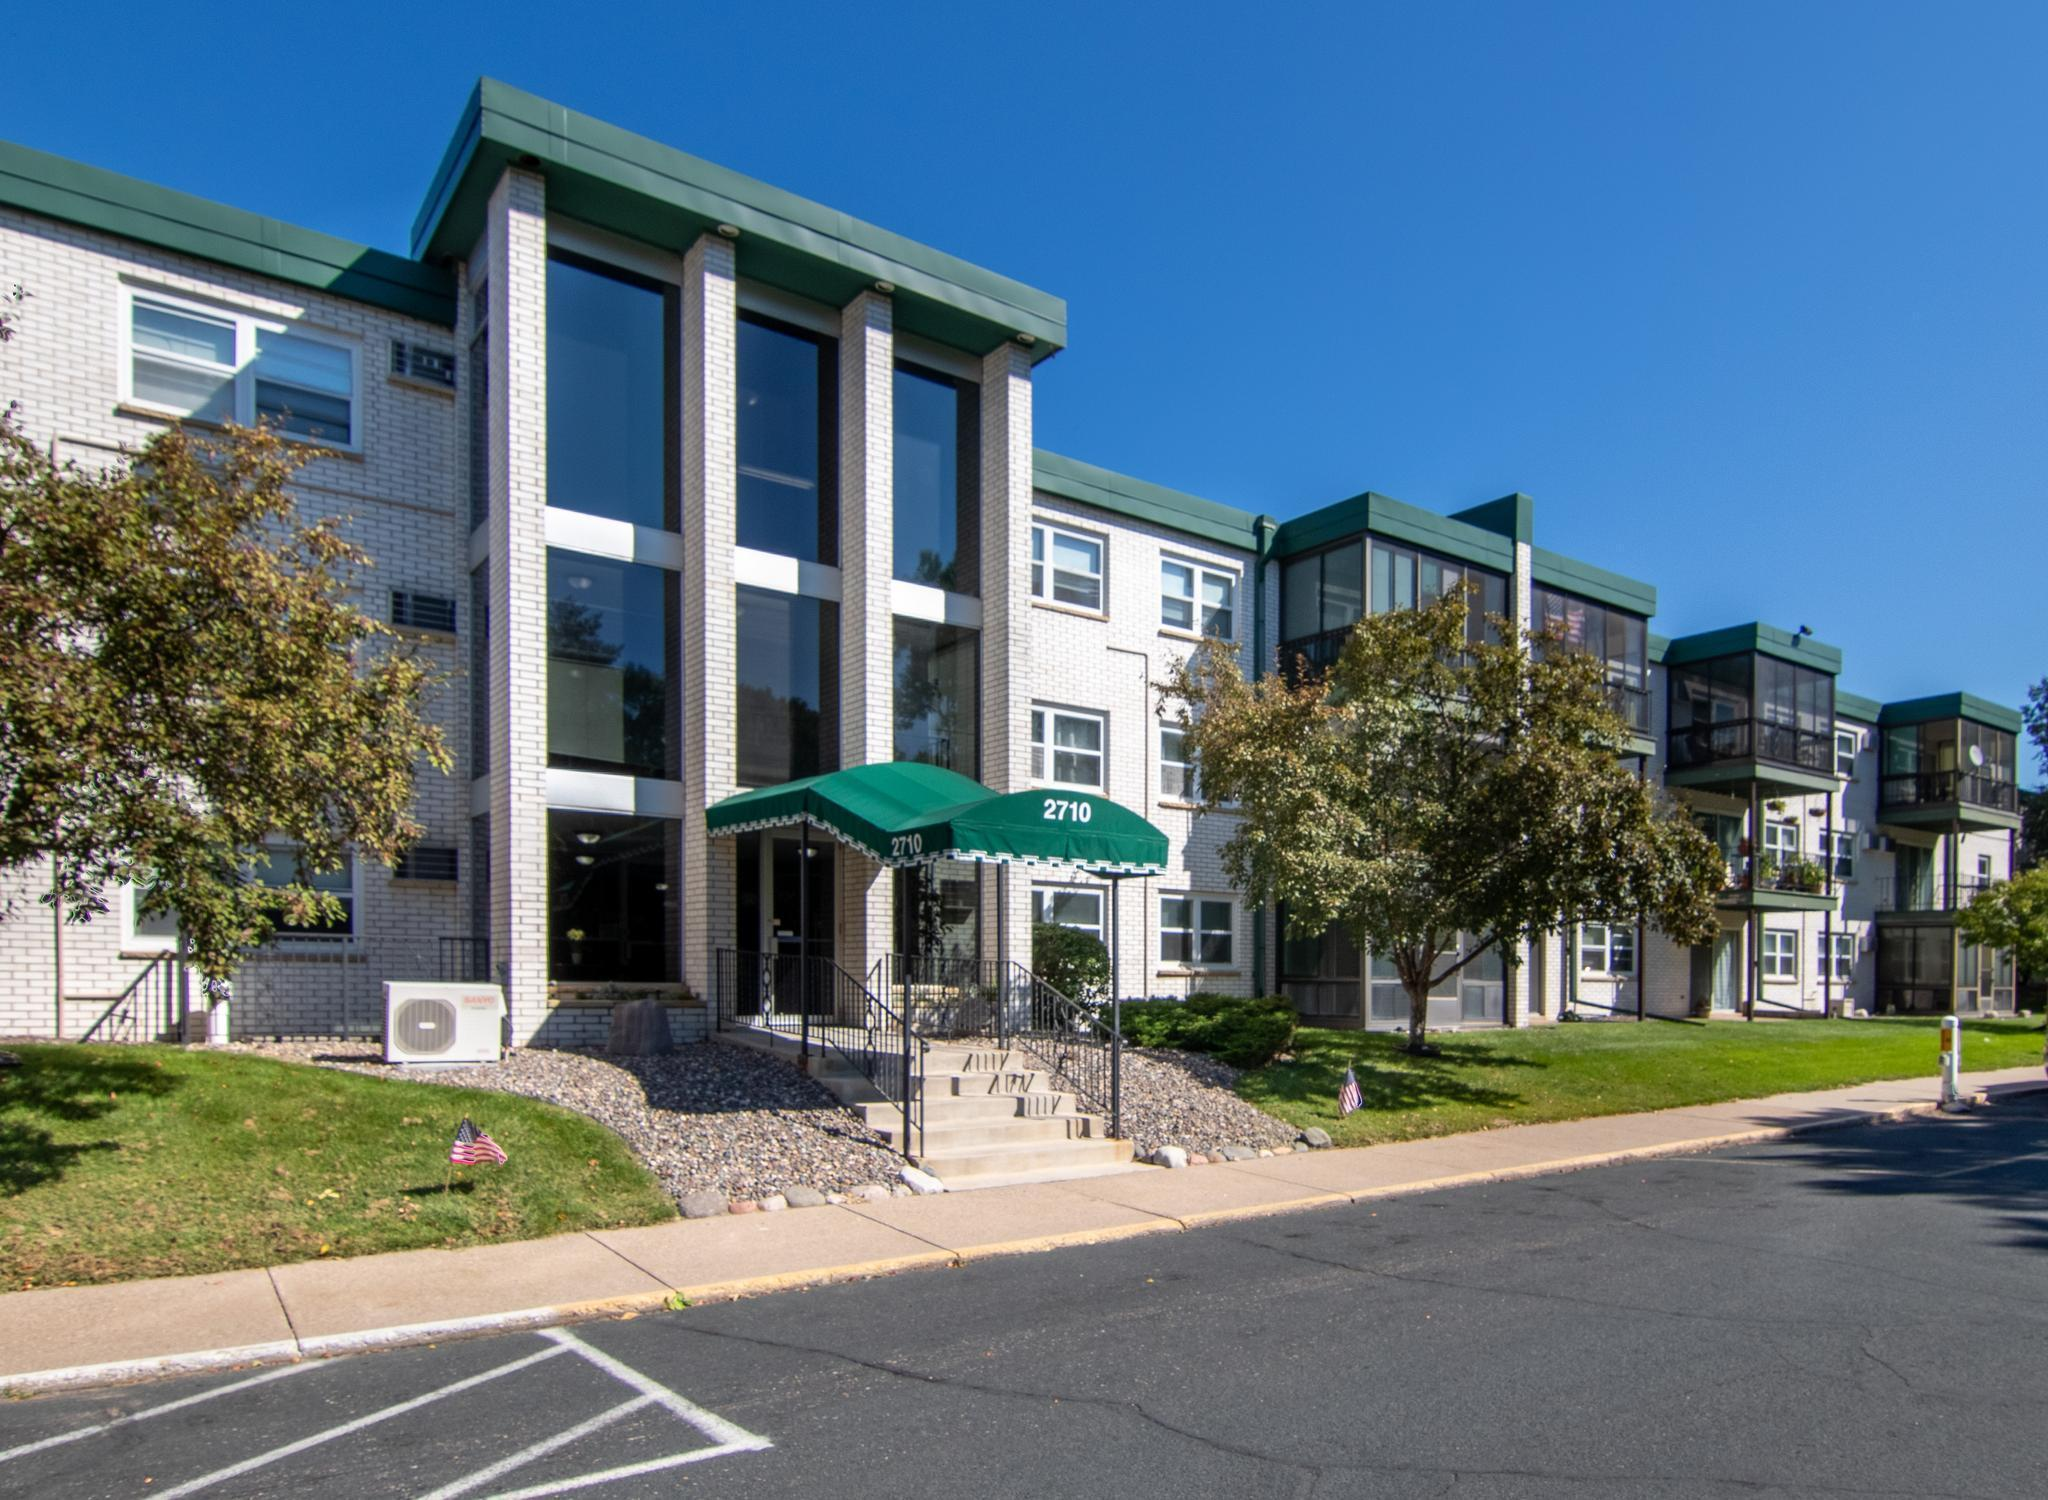 Apt Own No94 Ramsey Square Real Estate Listings Main Image